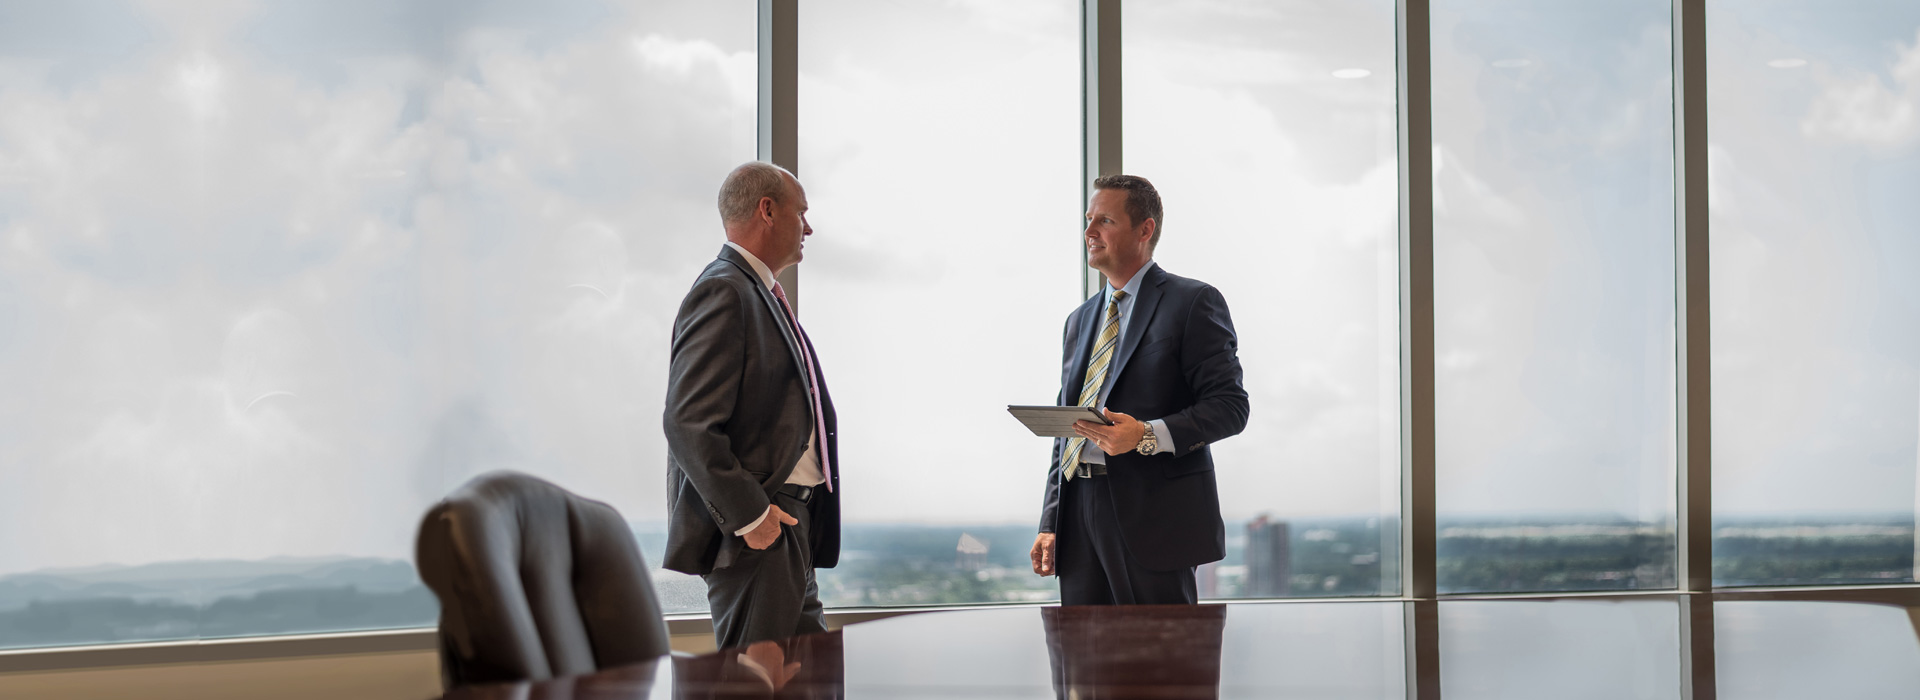 Two Santora execs converse about the value of client service, a proactive approach and superior technical knowledge